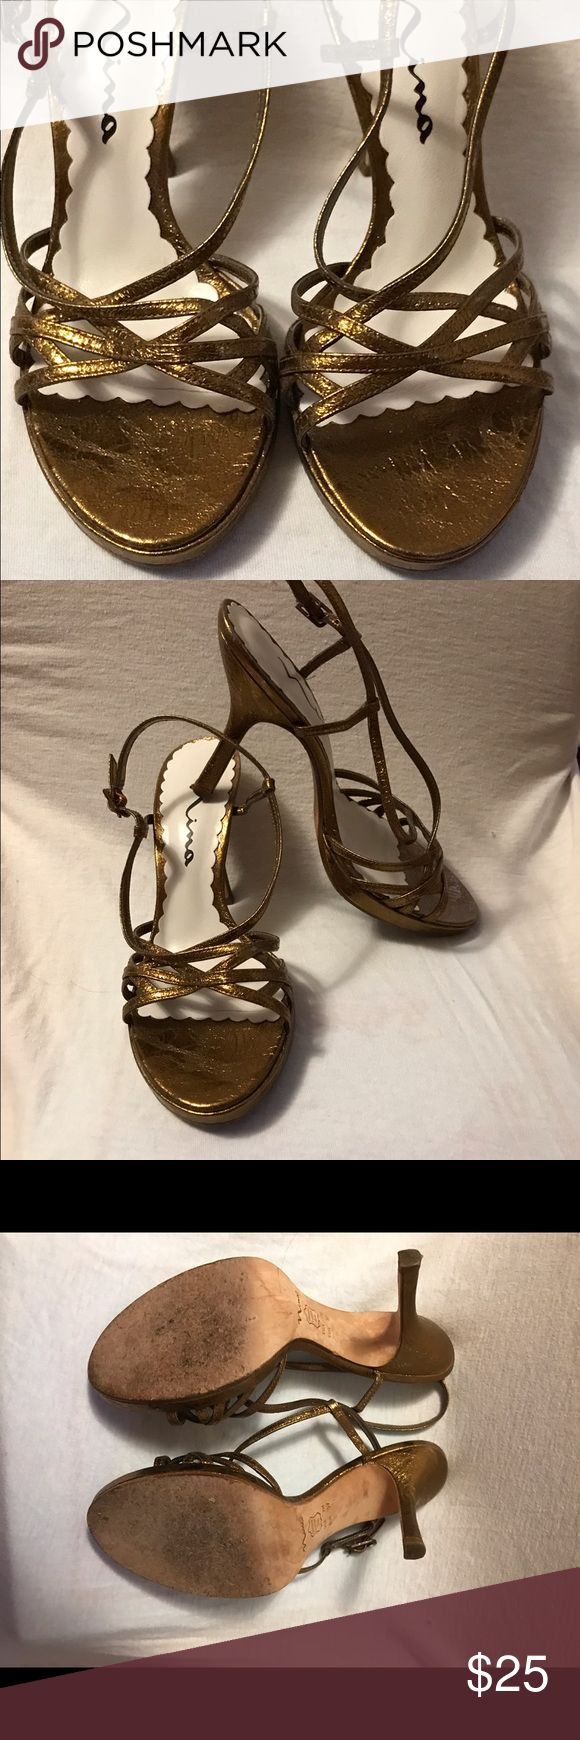 """Nina Copper Metallic Strappy Heels Size 7 Near perfect condition! Nina Copper Metallic strappy 4"""" heels. Virtually no signs of wear except on soles. Size 7 very comfortable for evening! Wore only 2xs to weddings! Nina Shoes Heels"""